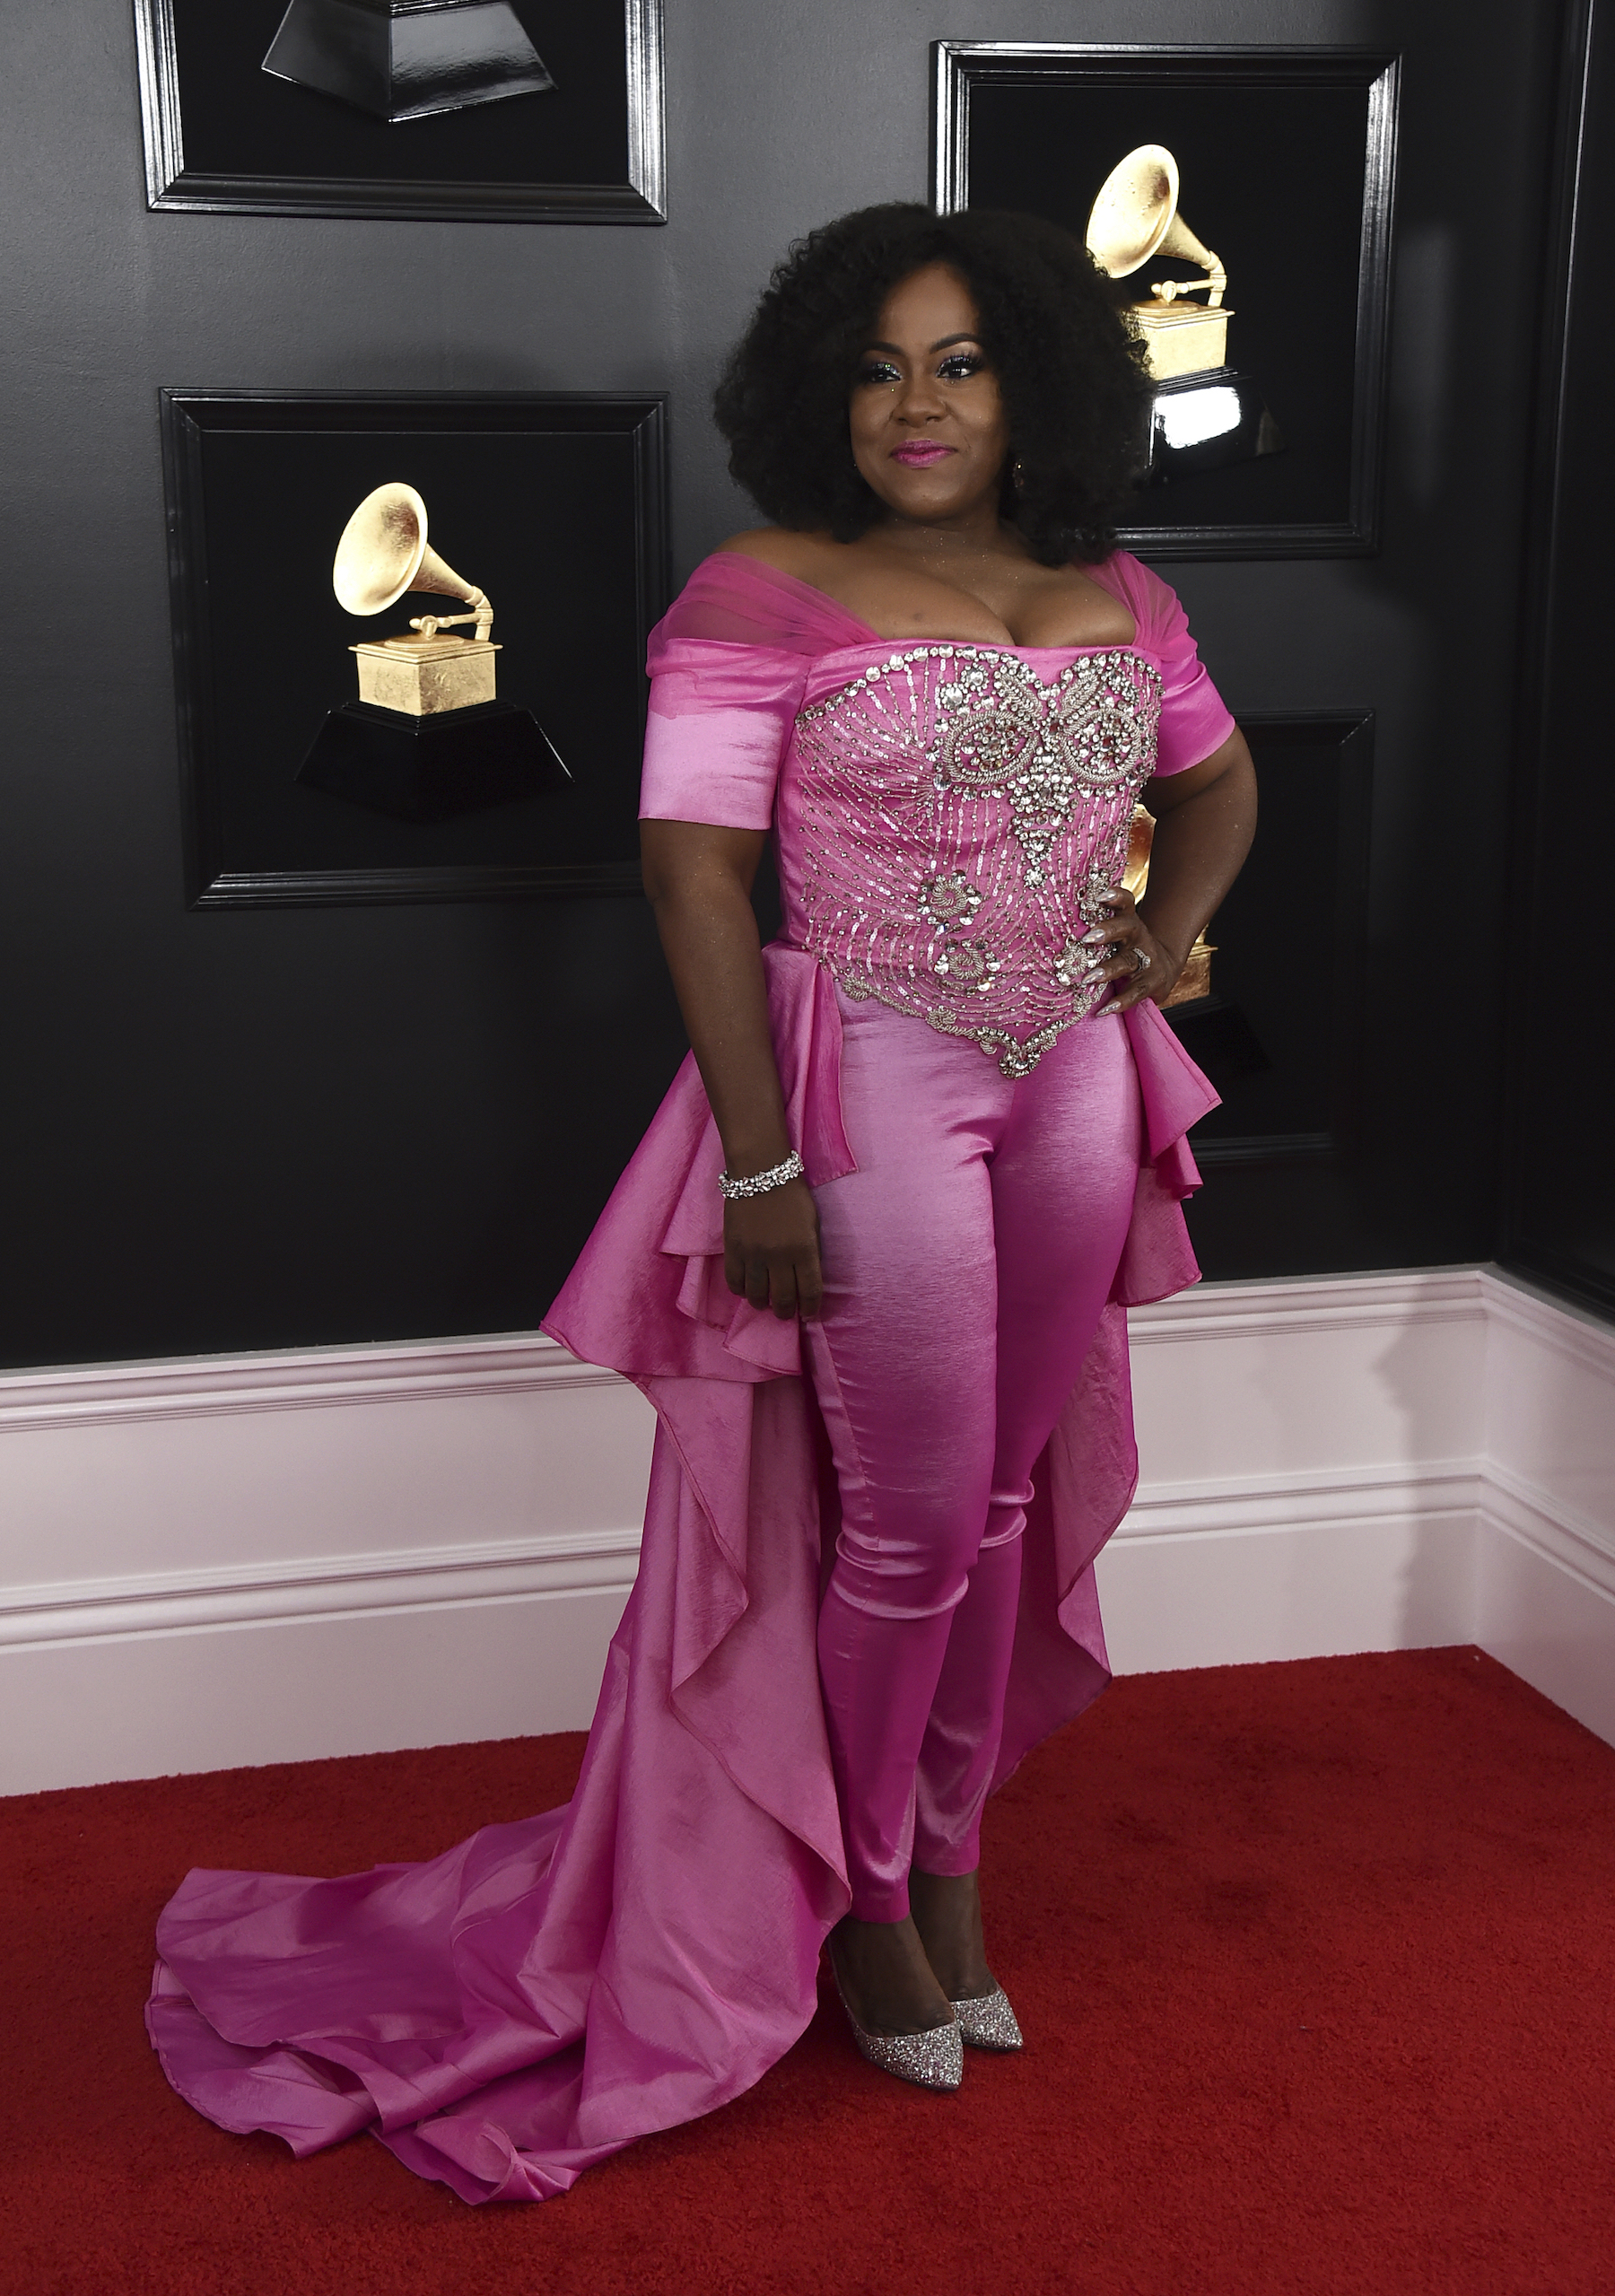 <div class='meta'><div class='origin-logo' data-origin='AP'></div><span class='caption-text' data-credit='Jordan Strauss/Invision/AP'>Etana arrives at the 61st annual Grammy Awards at the Staples Center on Sunday, Feb. 10, 2019, in Los Angeles.</span></div>